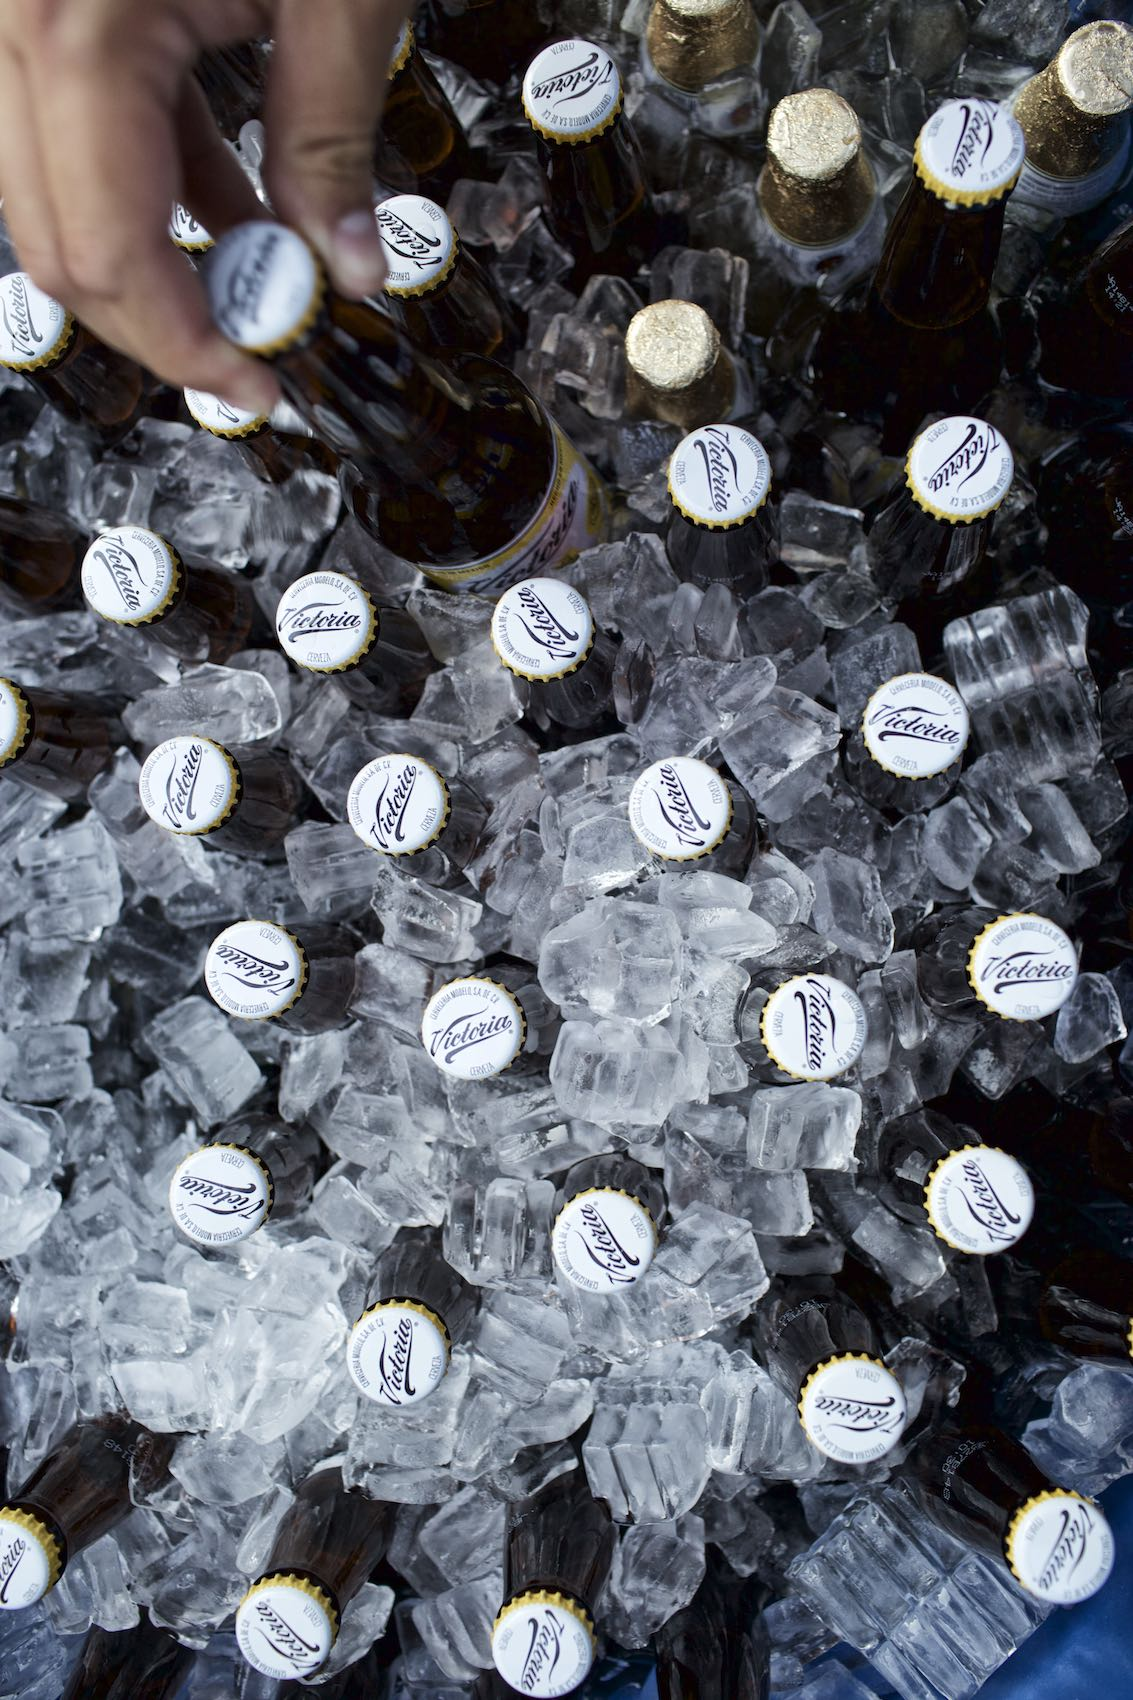 Jody Horton Photography - Victoria beer in ice from above.